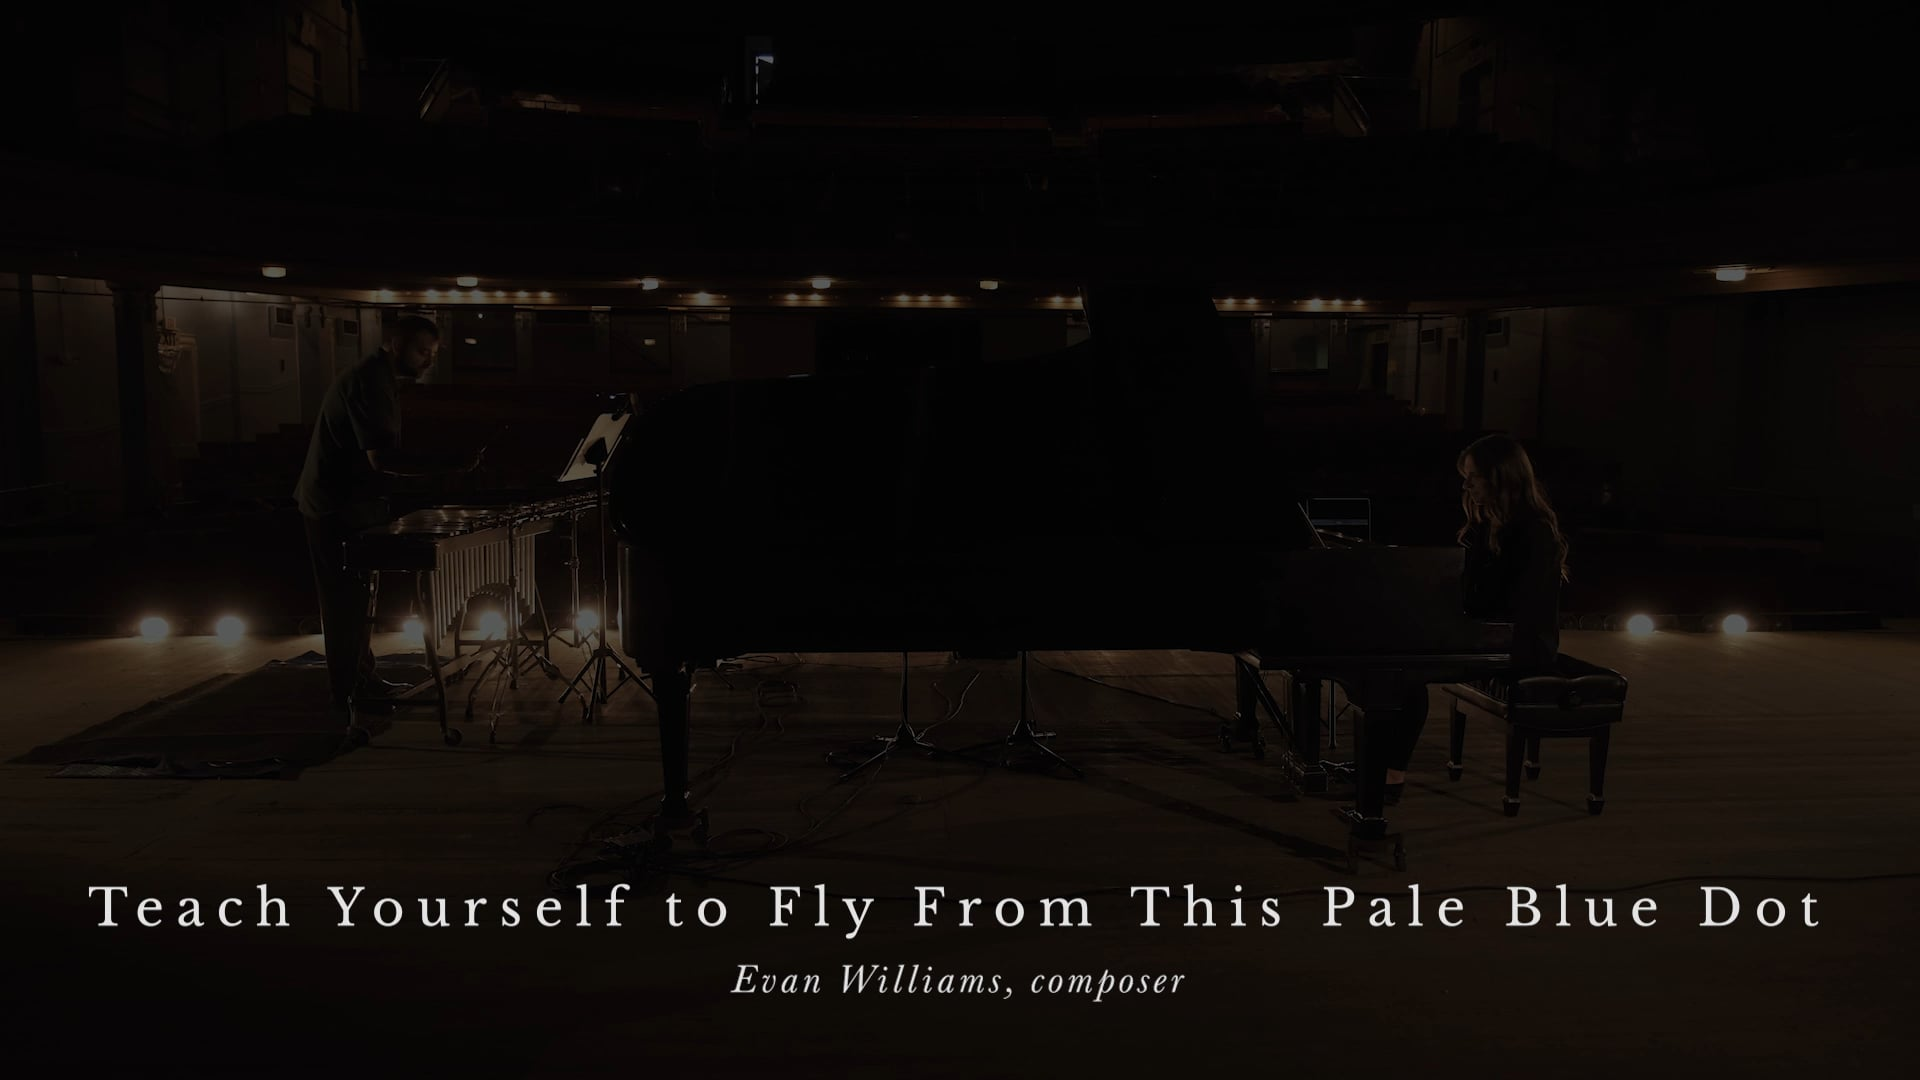 Teach Yourself To Fly From This Pale Blue Dot (2020) by Evan Williams - The Oliveros Response Project